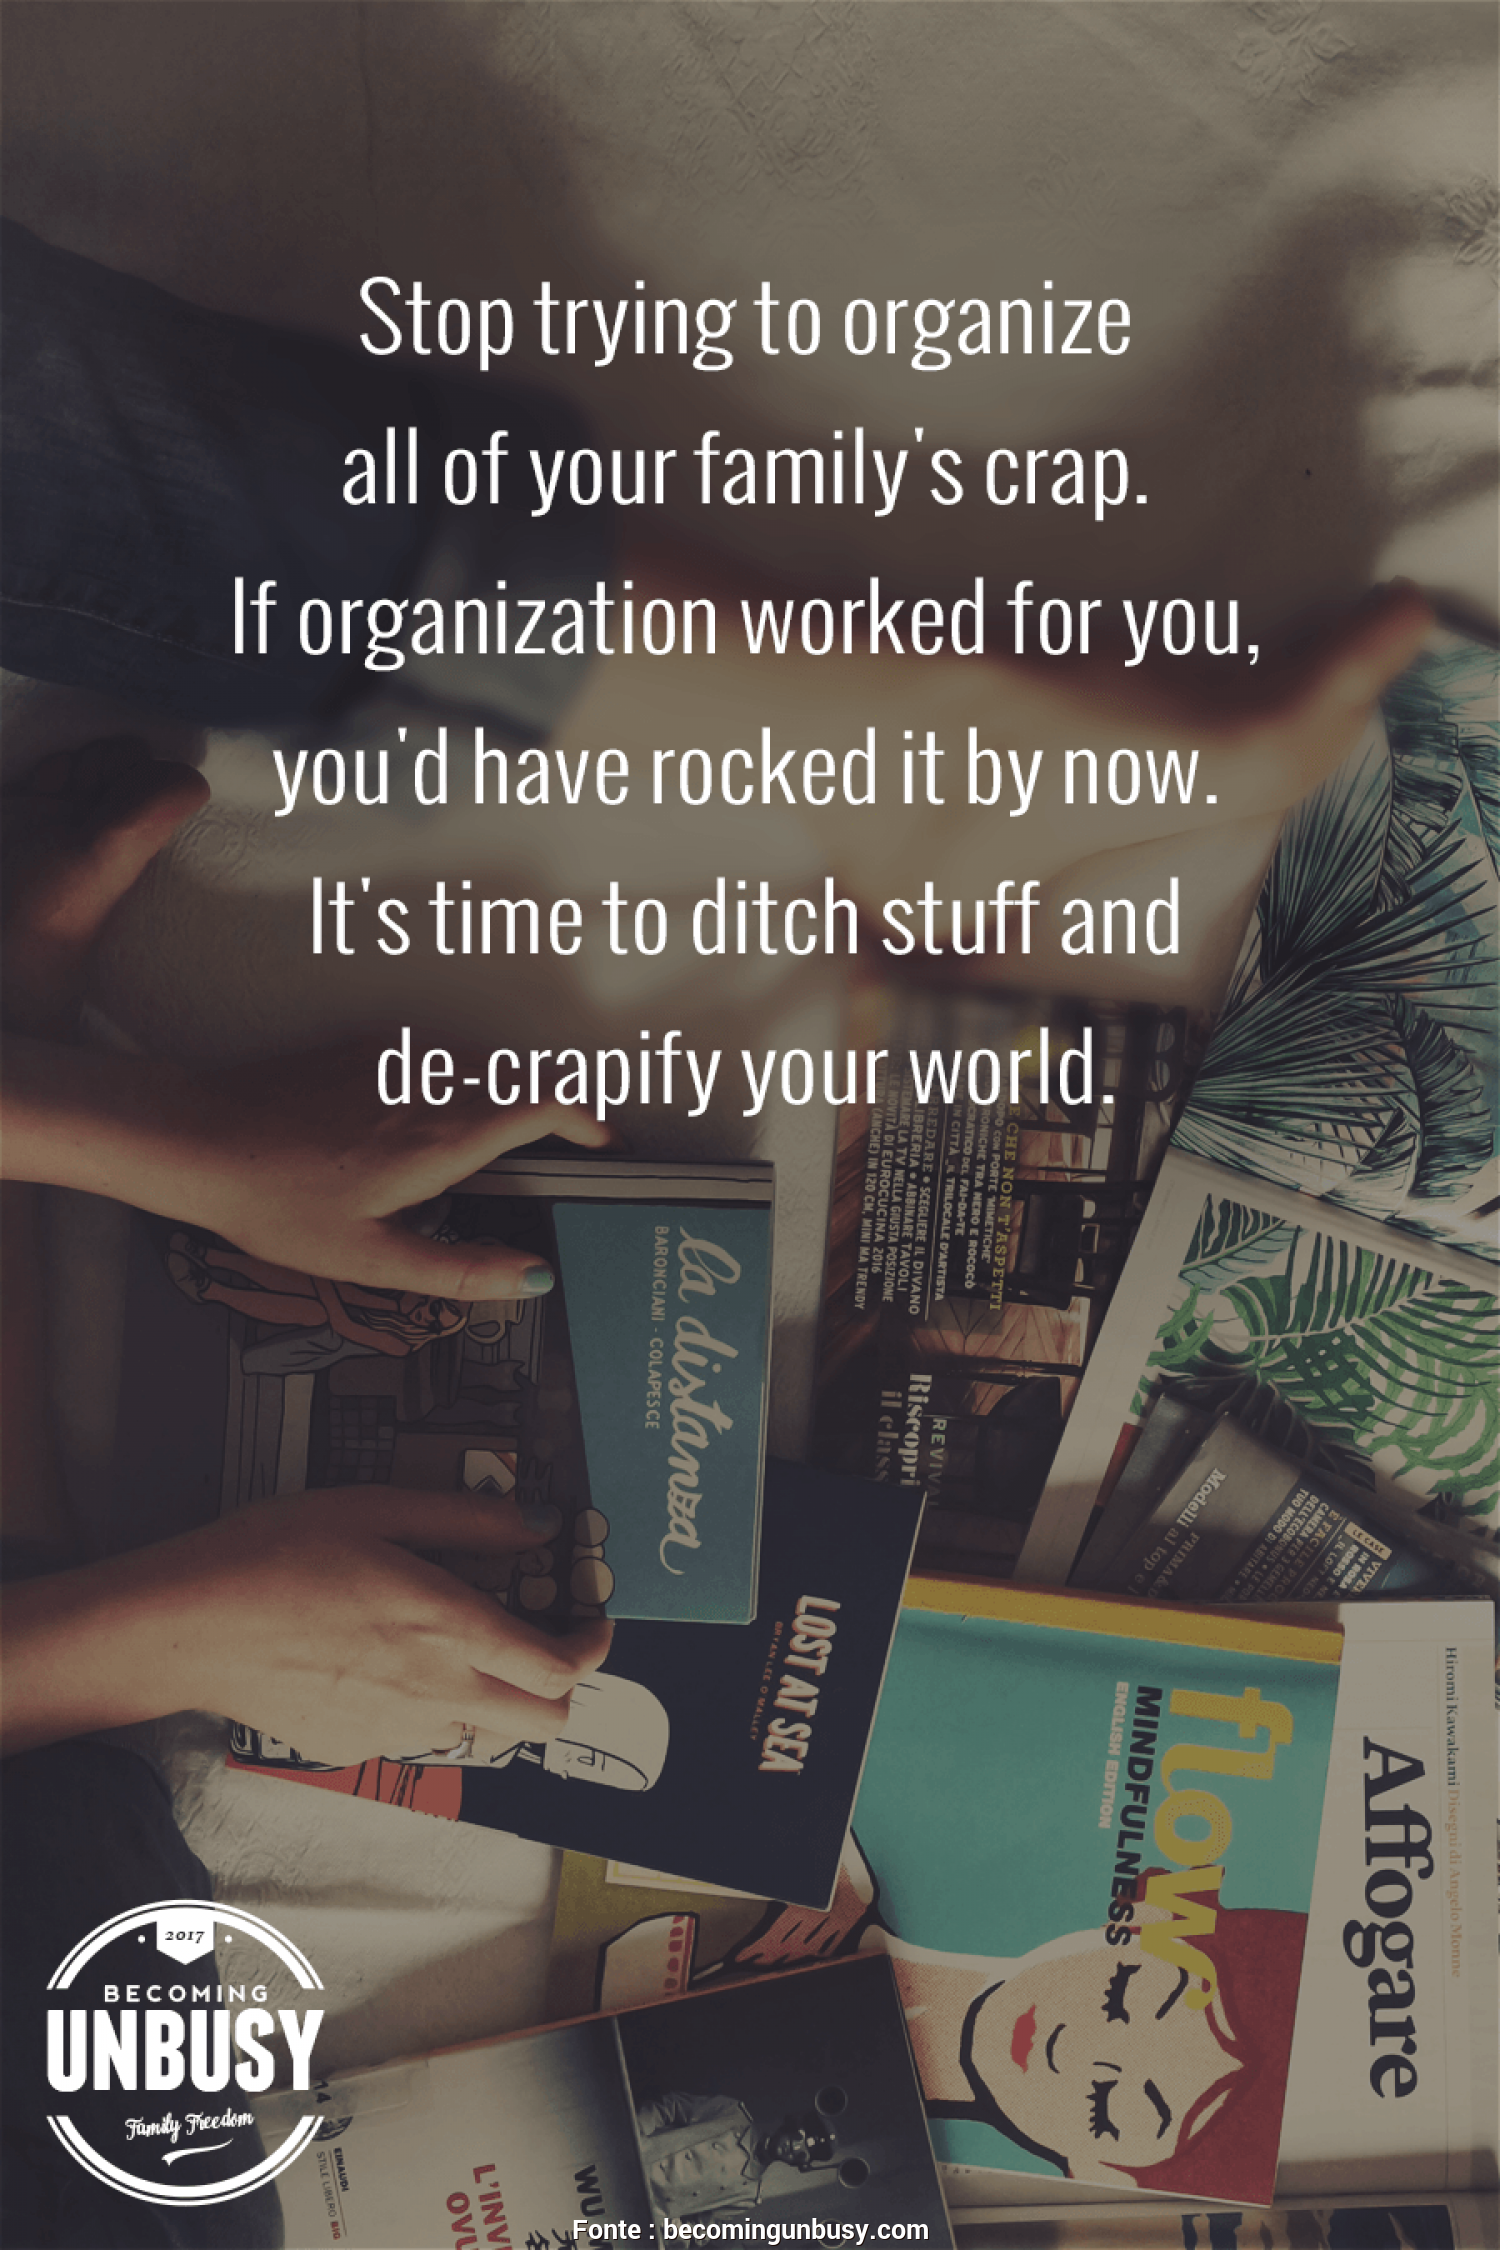 Distanza Giusta, Tv E Divano, Delizioso Stop Trying To Organize, Of Your Family